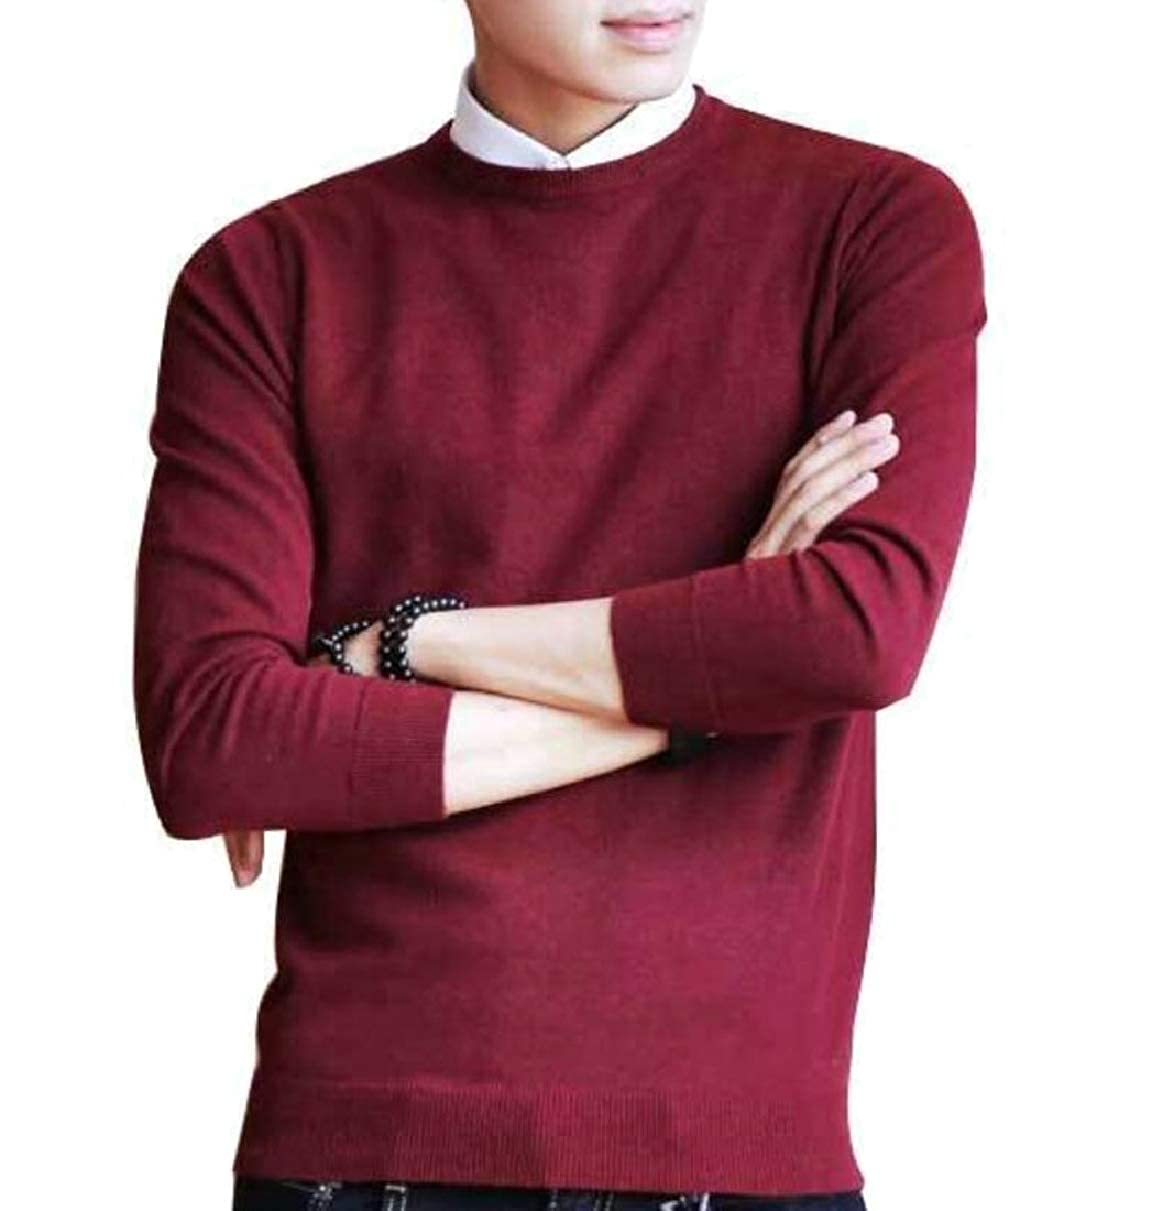 ZXFHZS Mens Lightweight Round Neck Solid Long Sleeve Knitted Pullover Sweaters